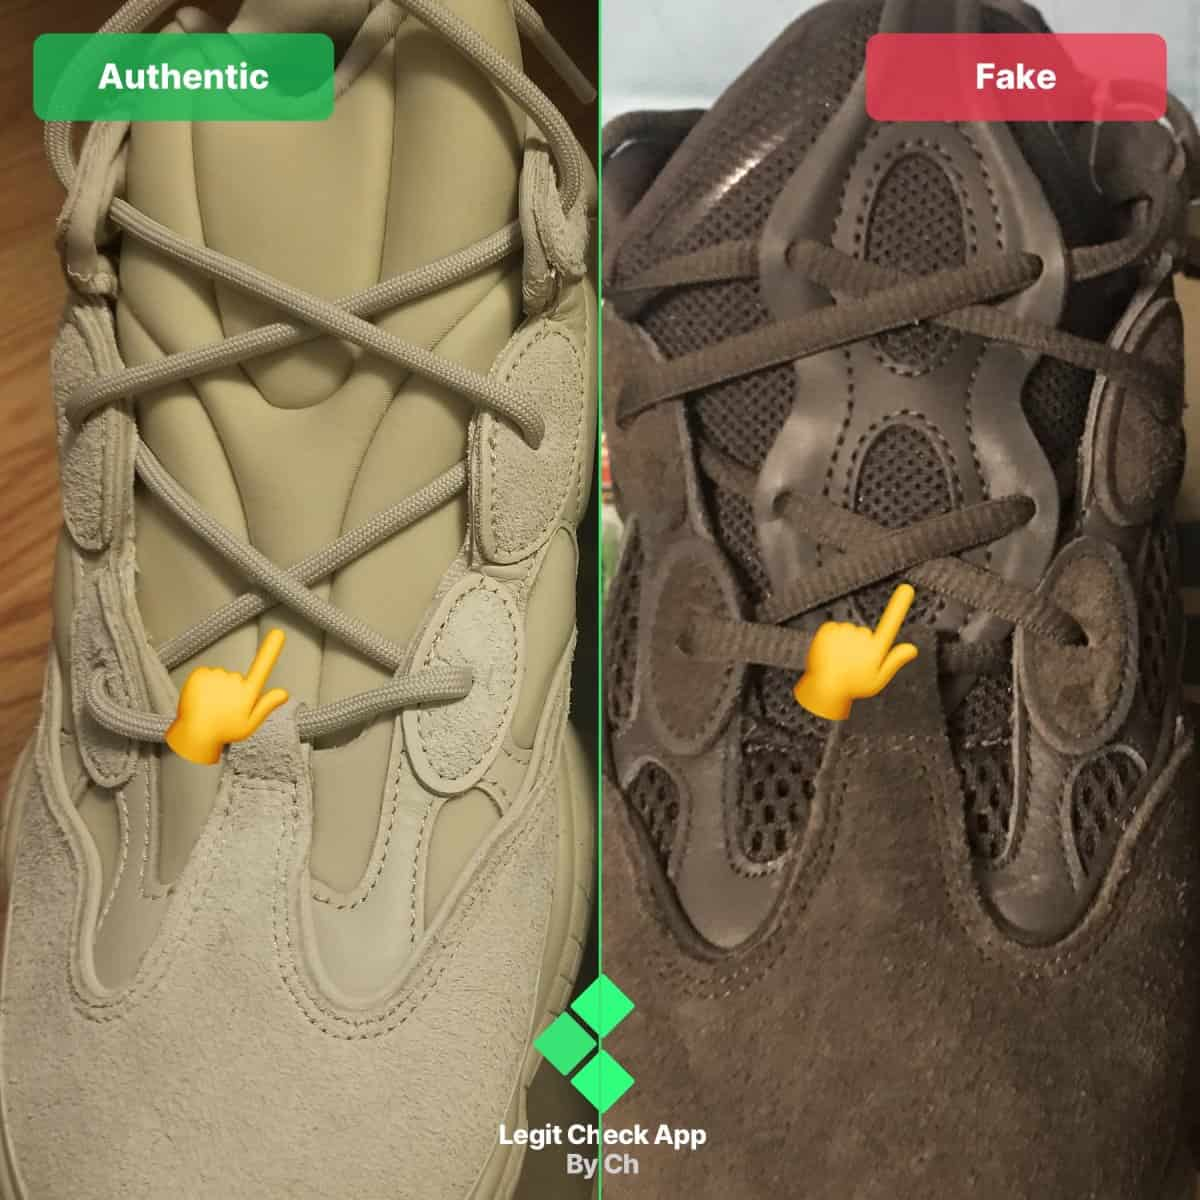 fake vs real yeezy